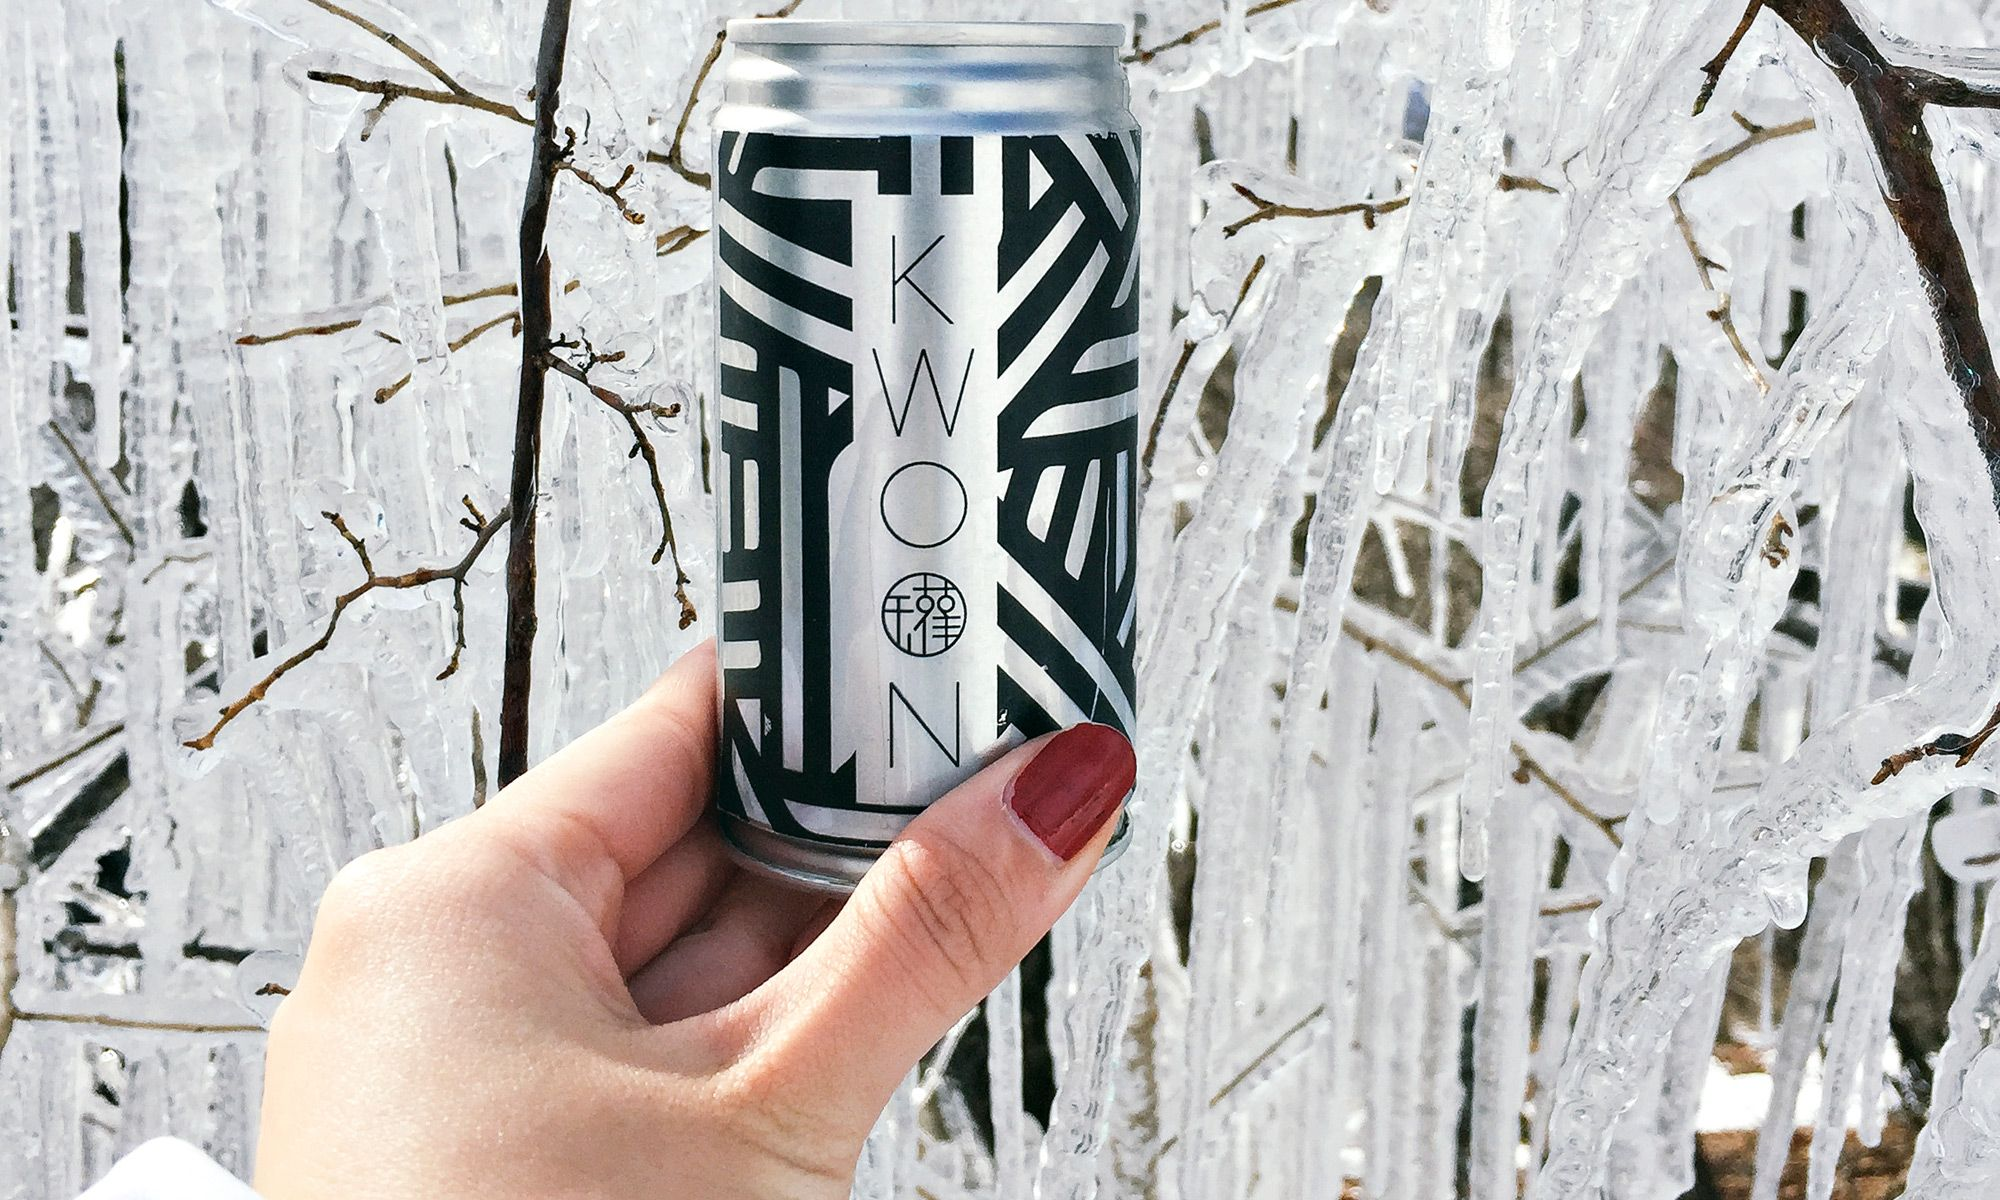 The Woods Launches Kwoon, the Bar's First Canned Cocktail Concept